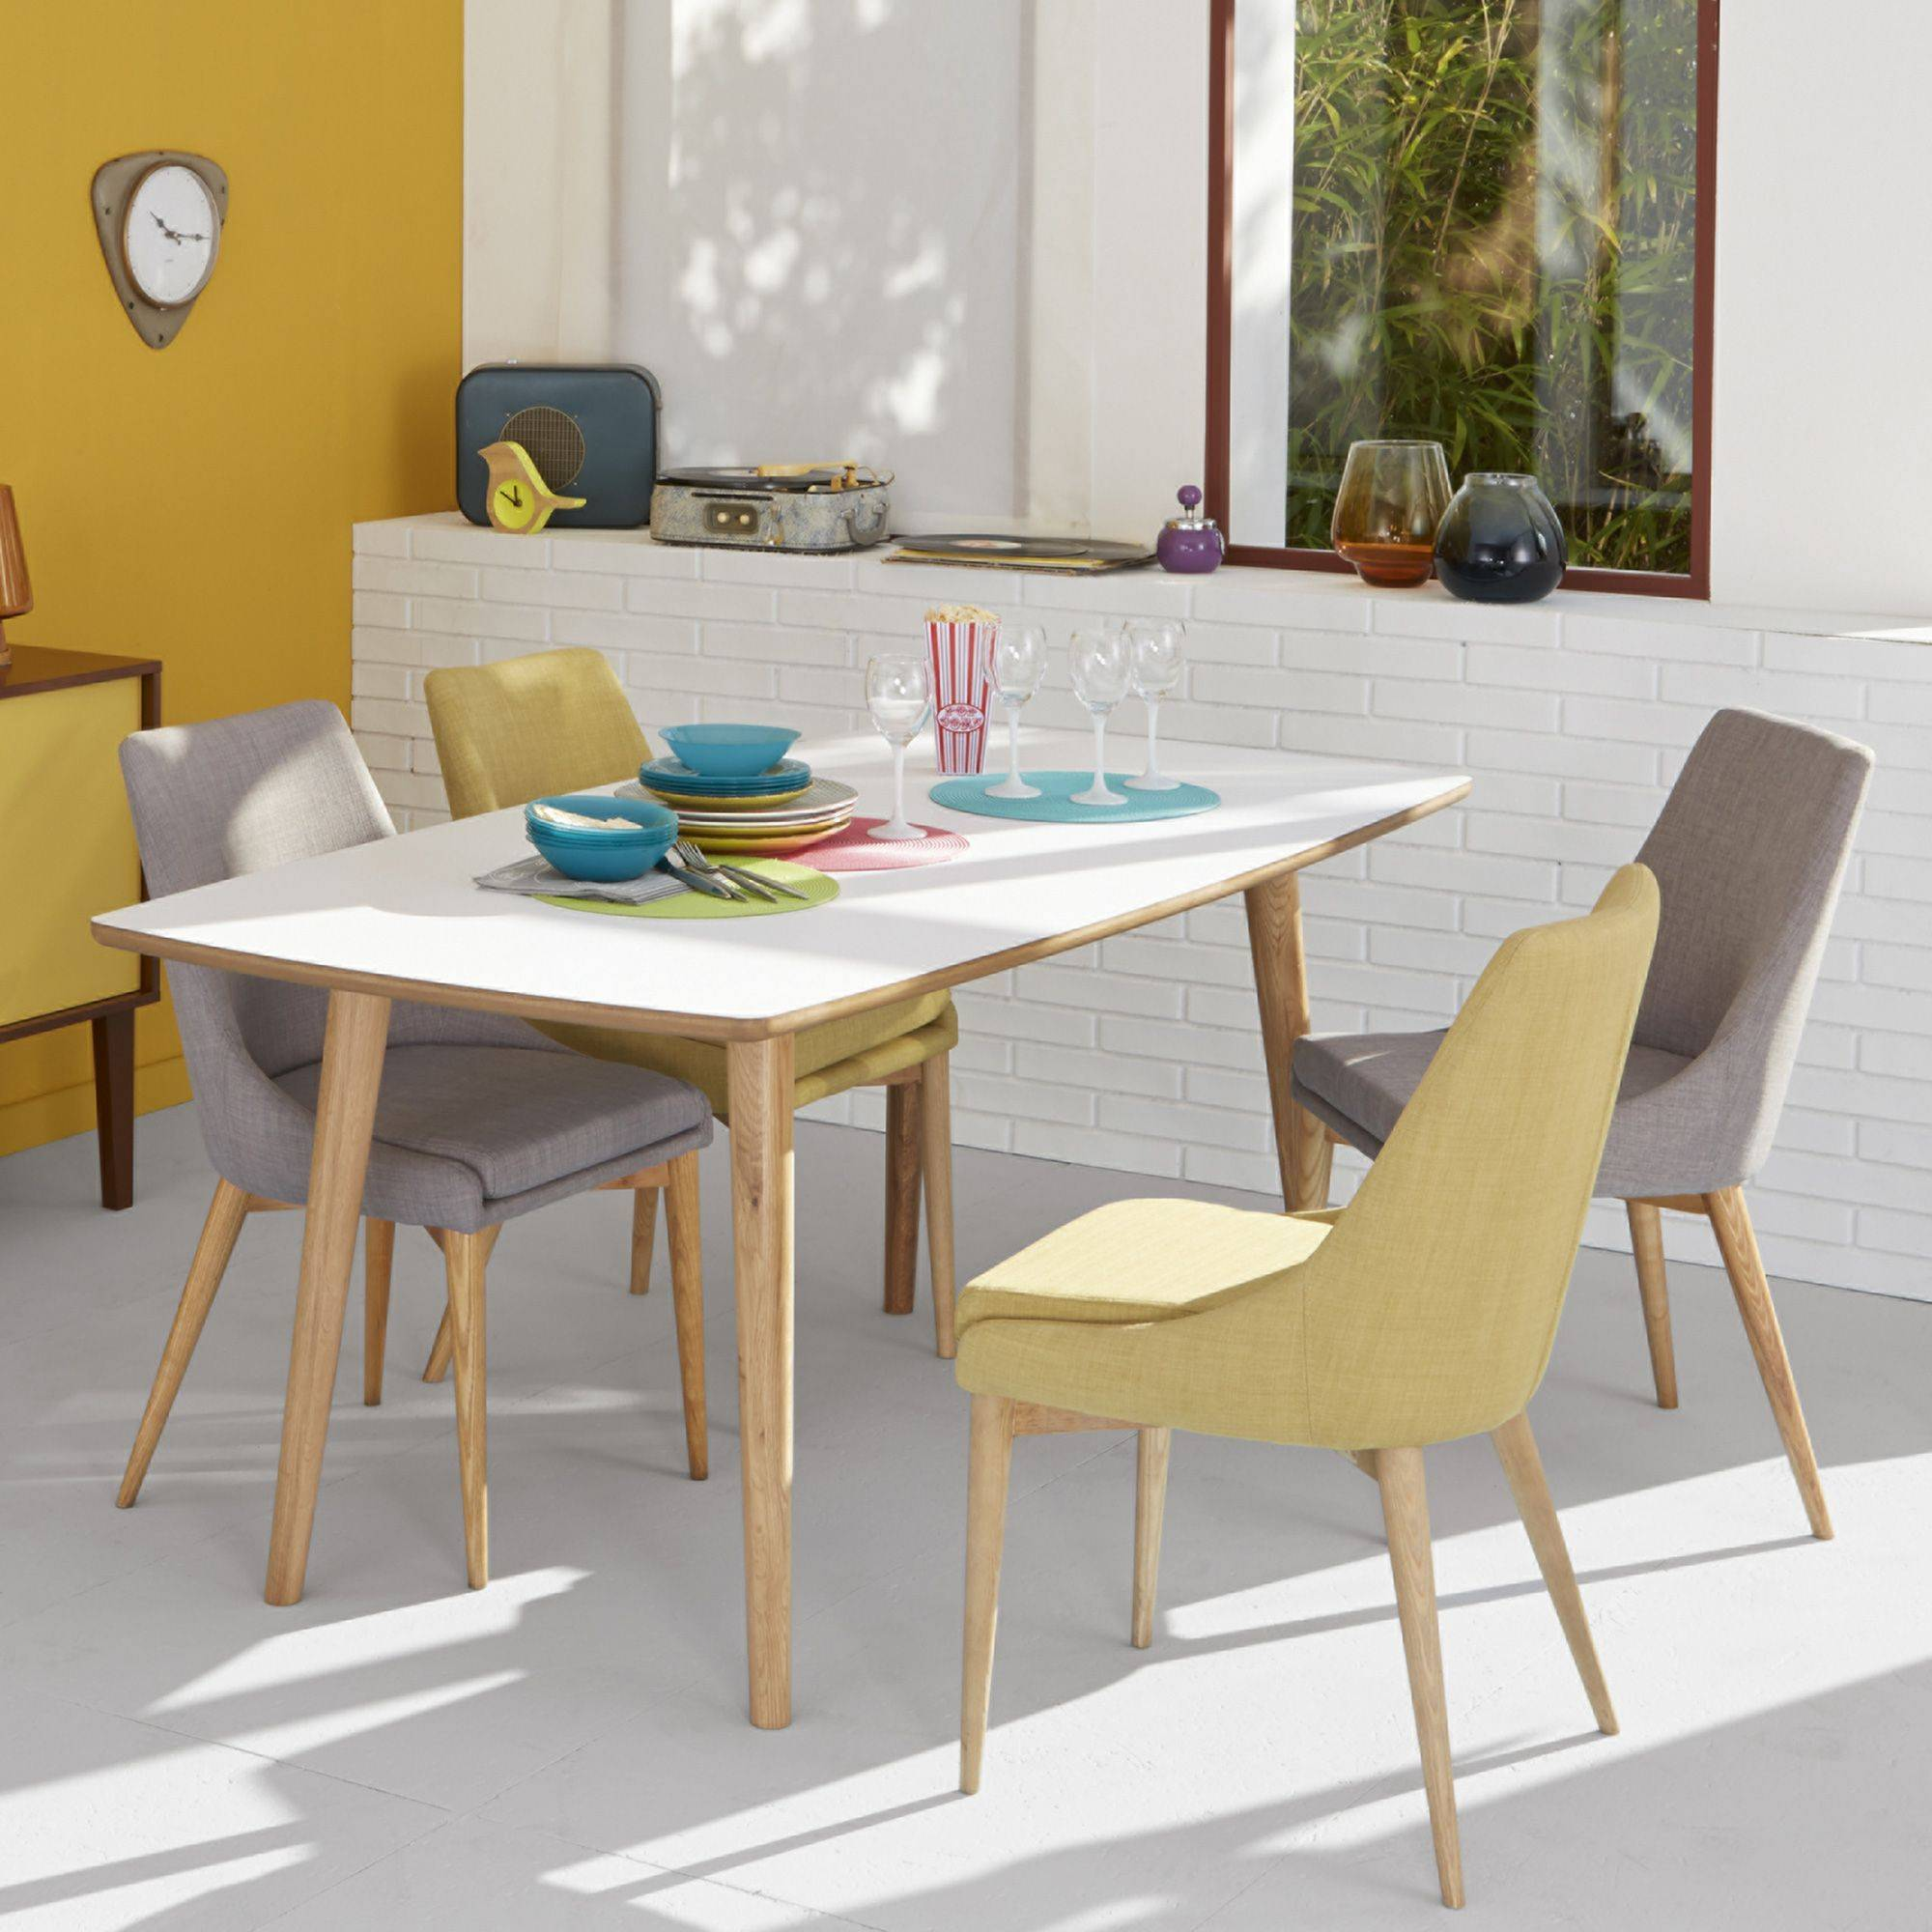 Comment choisir entre chaise et tabouret for Alinea chaise